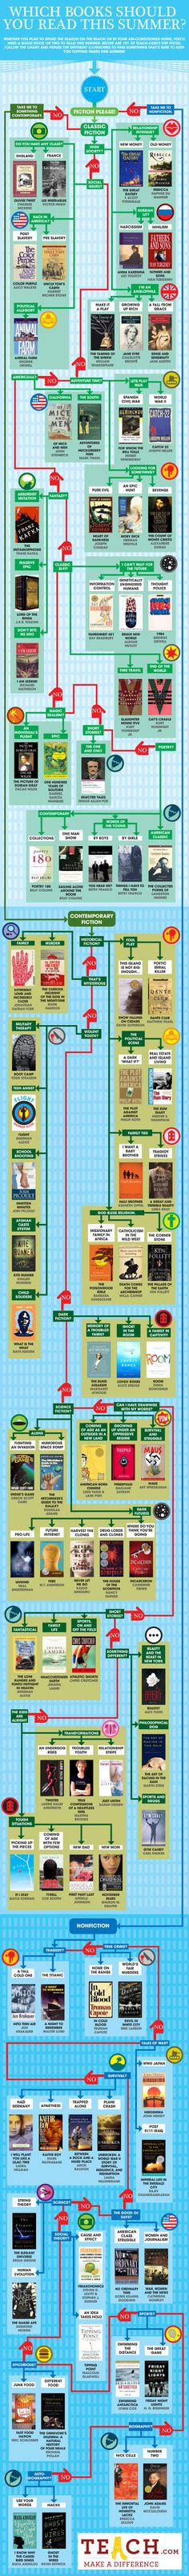 What Should You Read This Summer? (INFOGRAPHIC) from Huff Post Books.